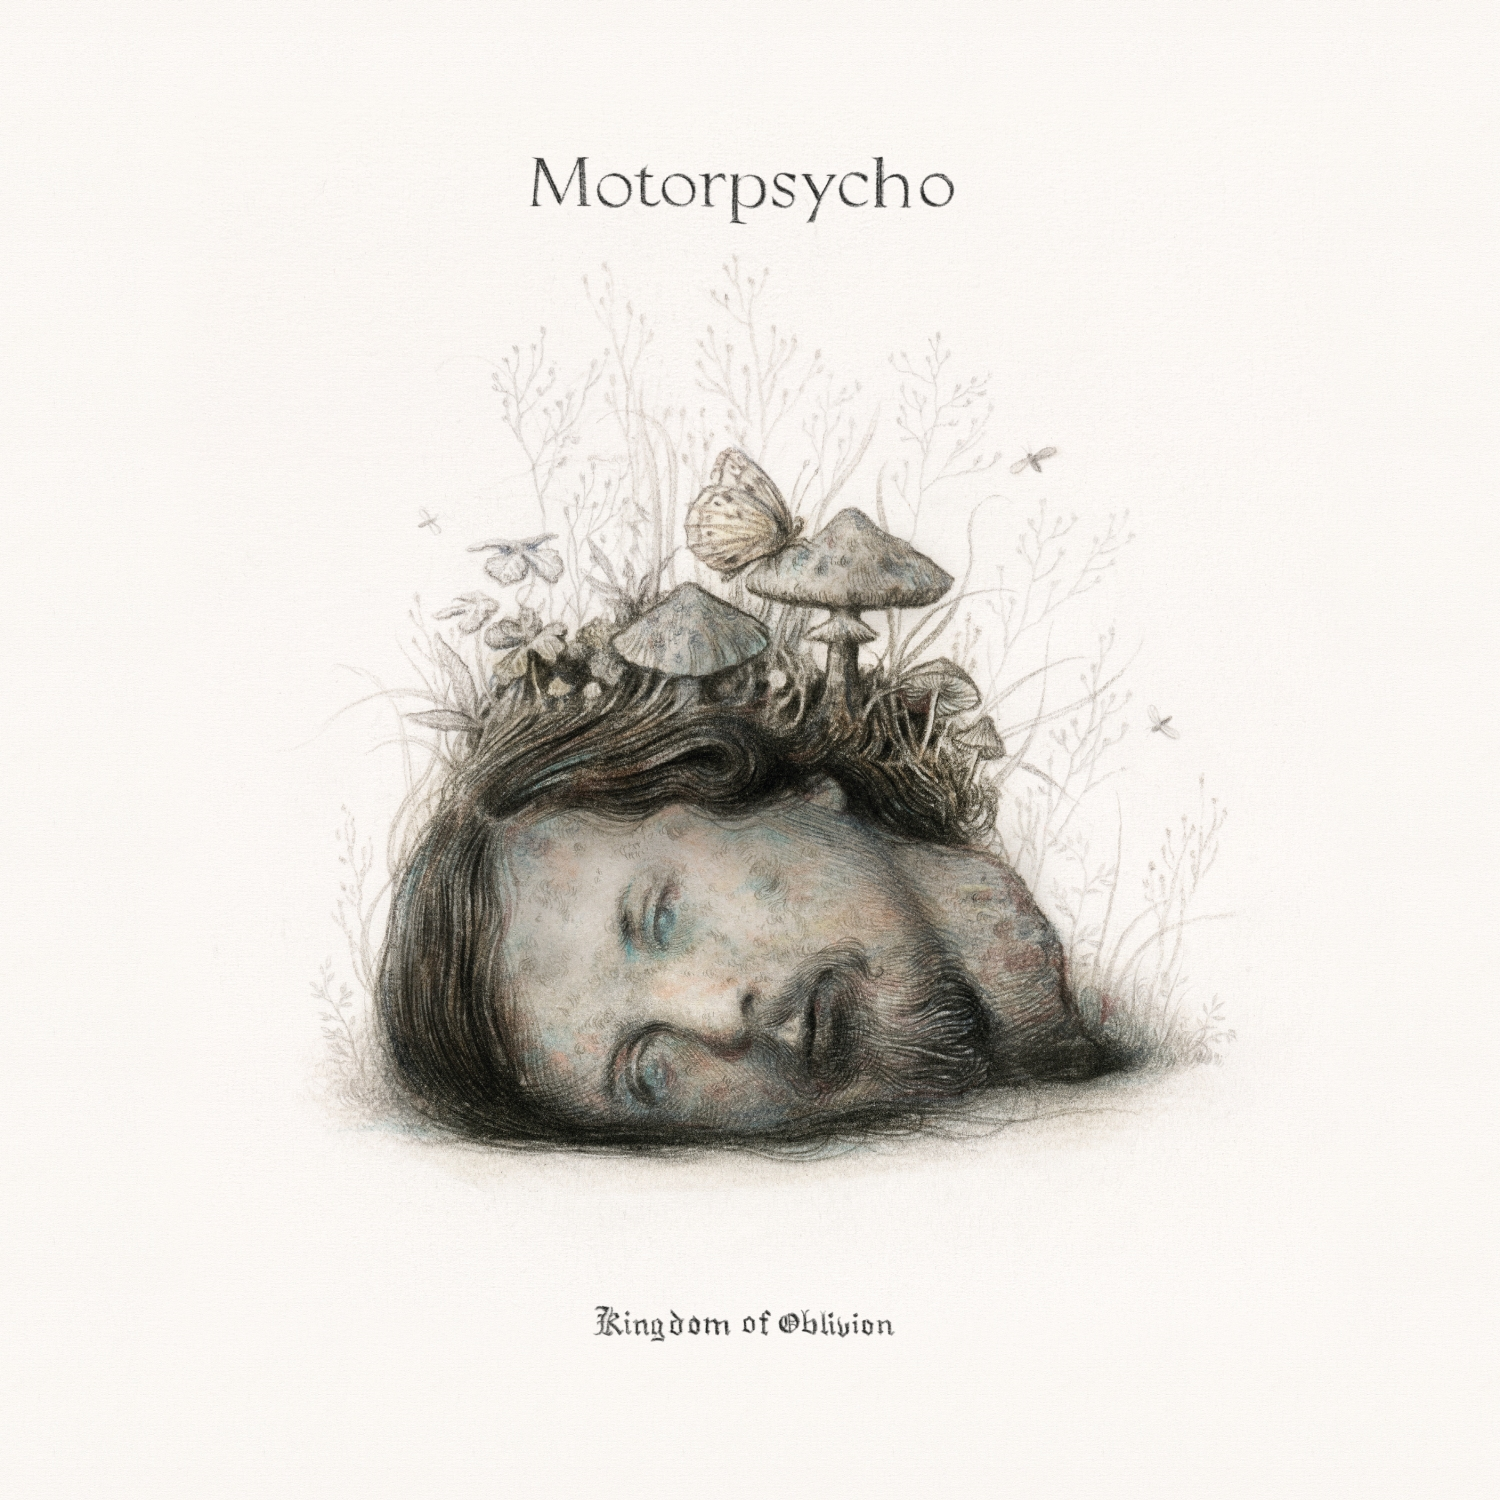 Motorpsycho – Kingdom Of Oblivion